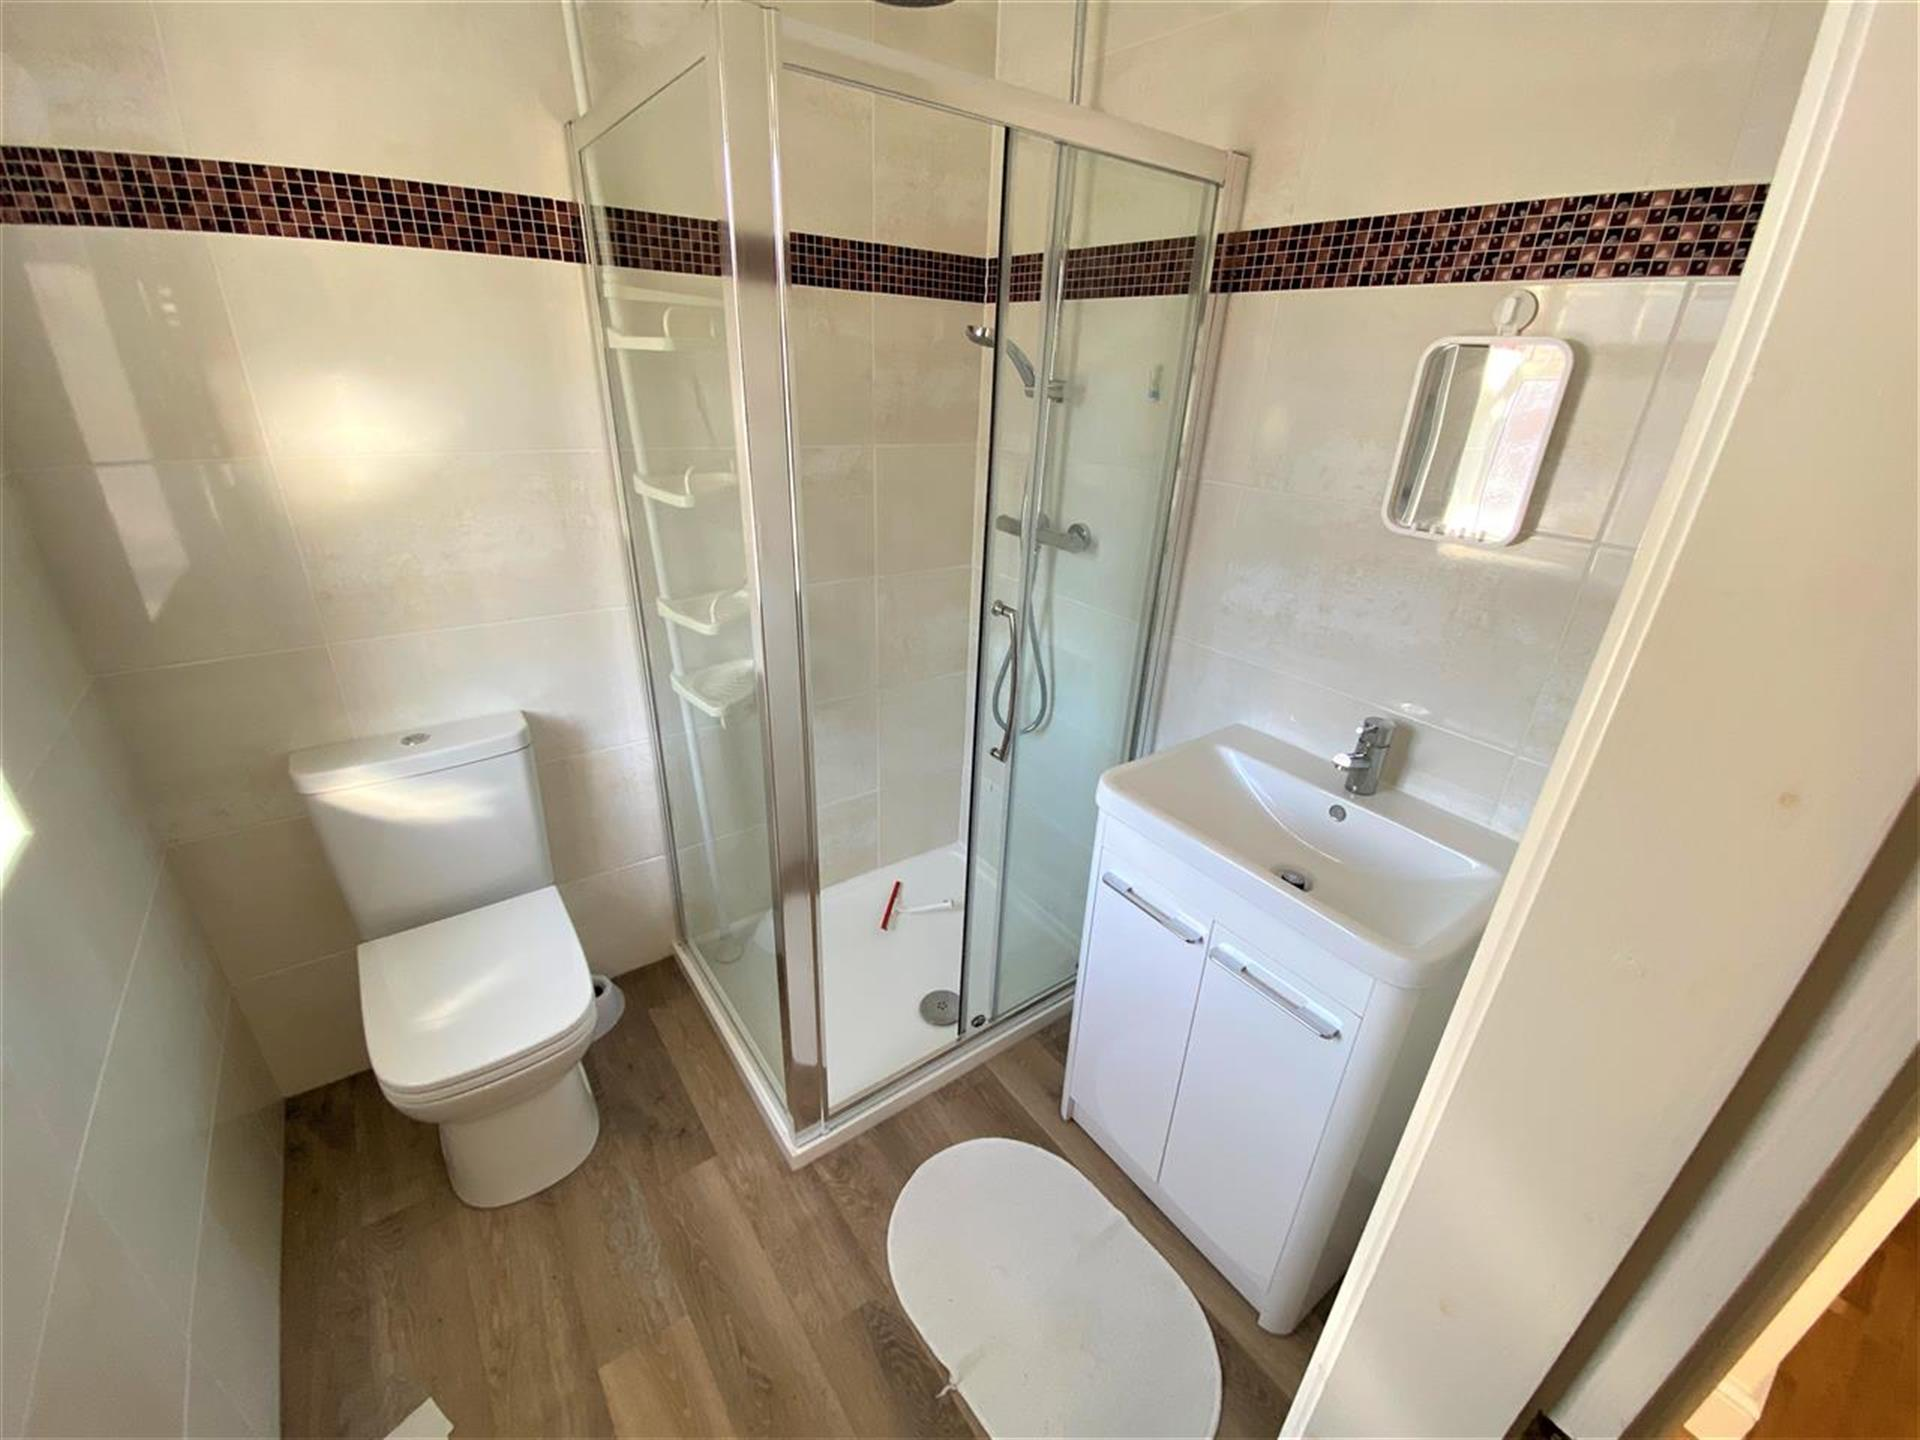 4 Bedroom Semi-detached House For Sale - En Suite